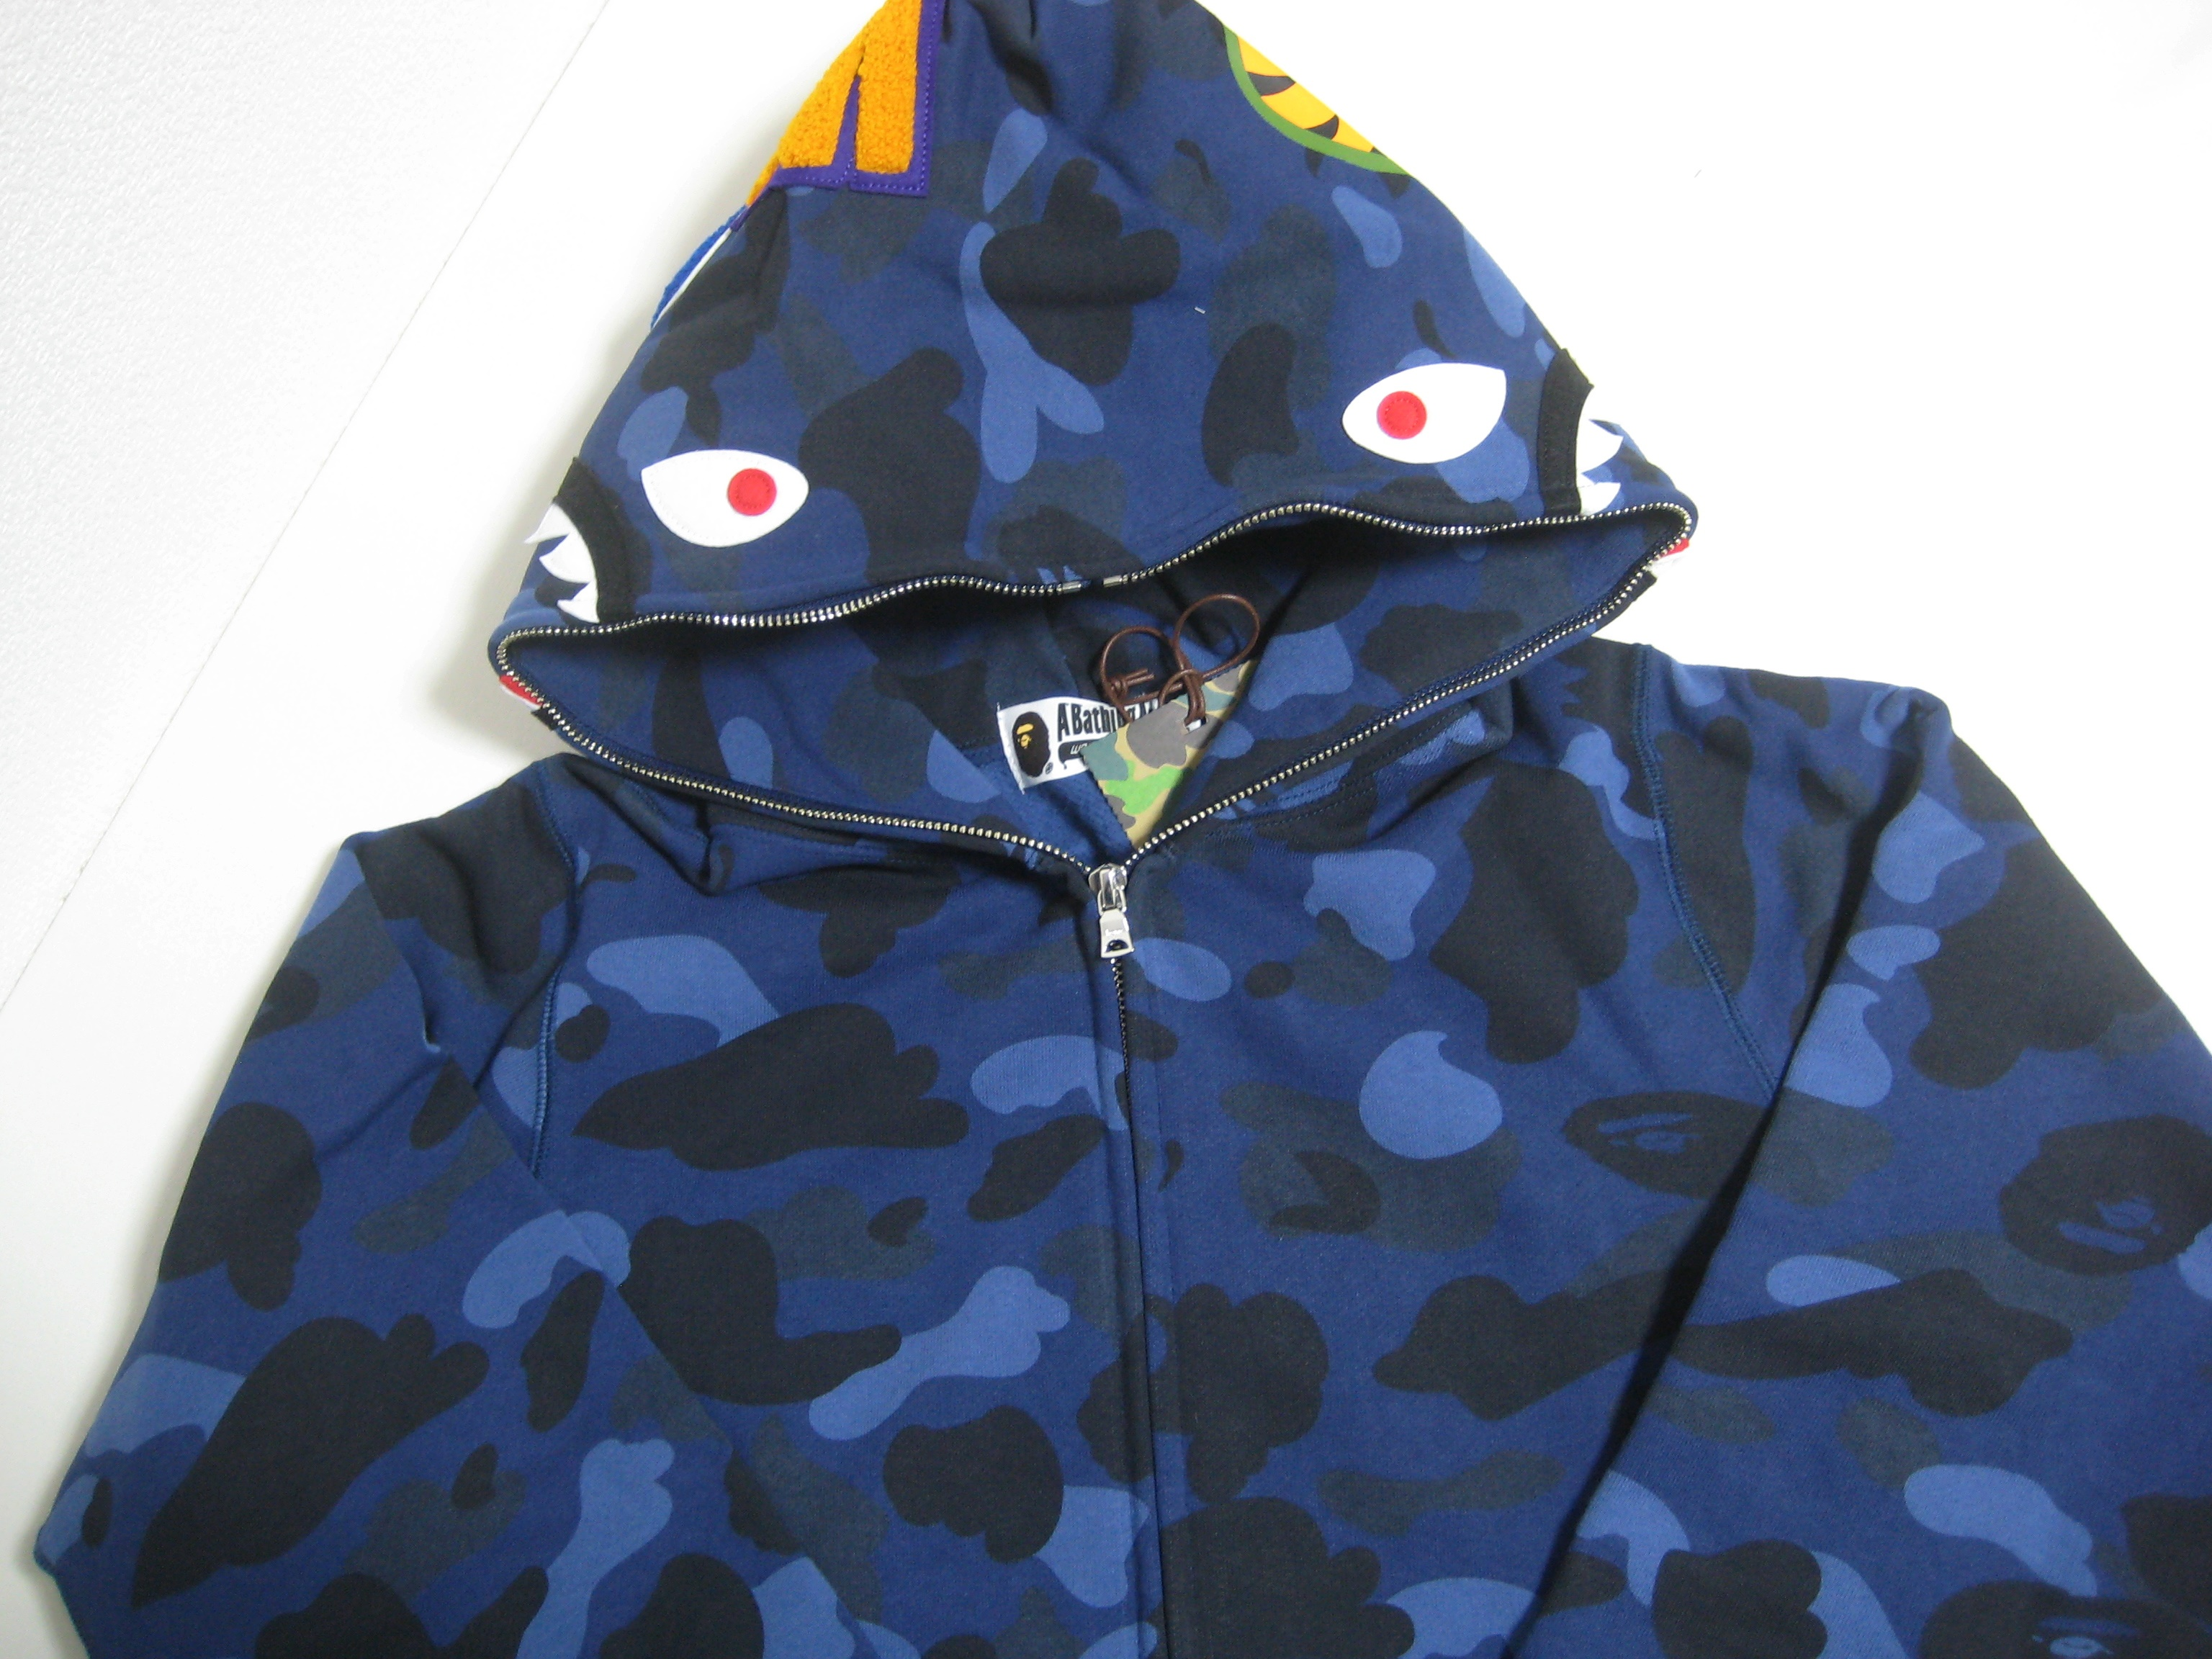 4e8da3478535 Bape A BATHING APE COLOR CAMO SHARK FULL ZIP HOODIE navy L 18ss bape made in  Japan Size l - Sweatshirts   Hoodies for Sale - Grailed